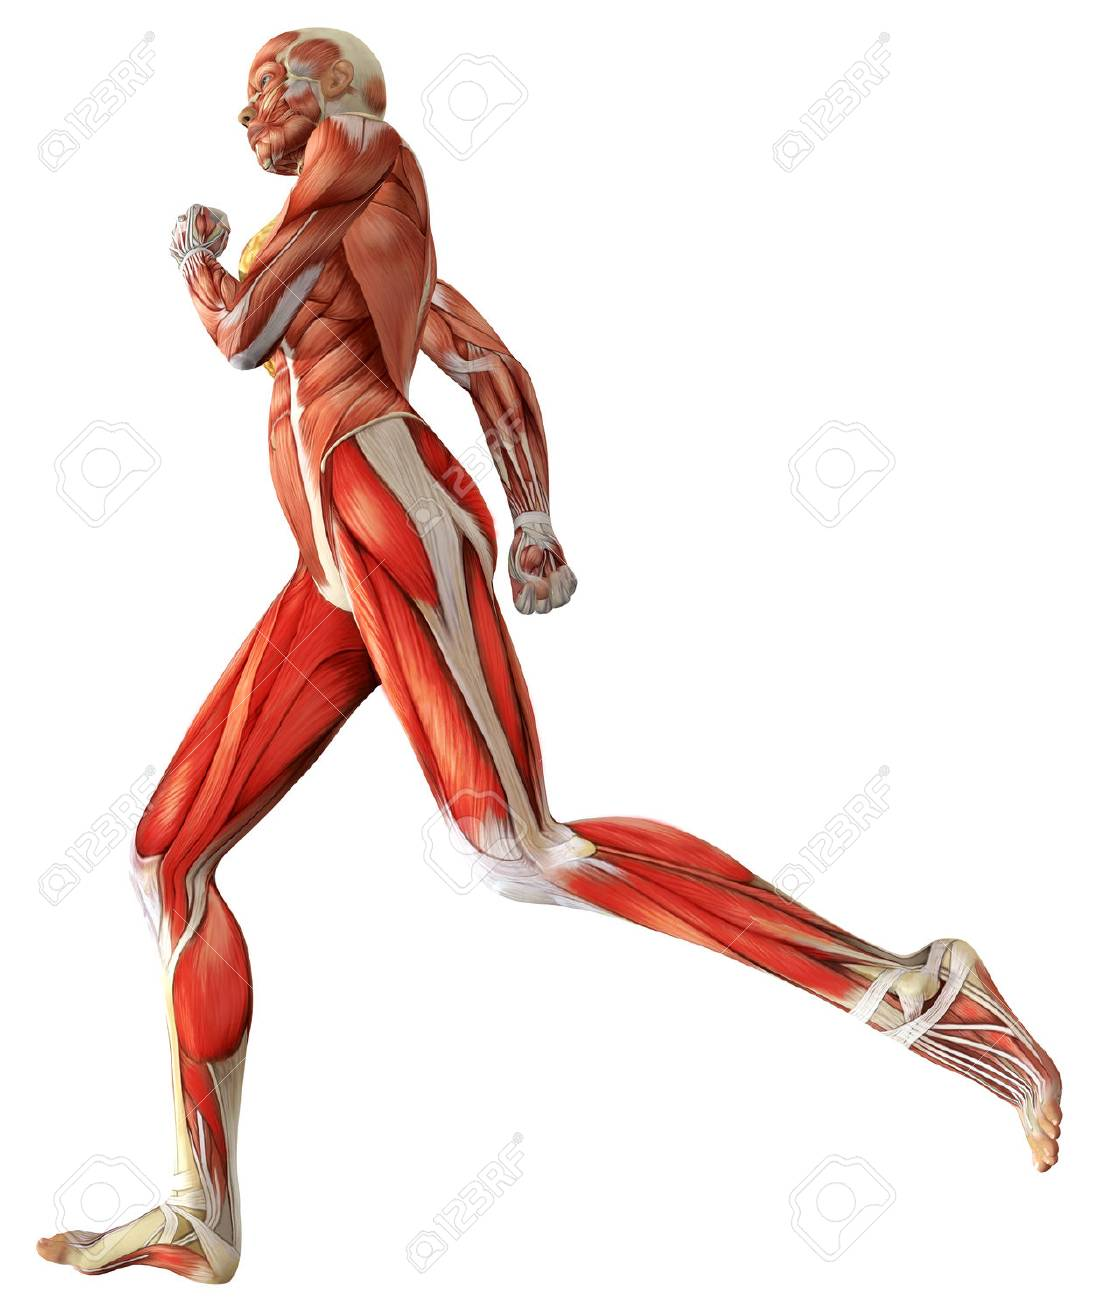 3D Female Medical Figure Showing Active Muscles When Running Rendered Illustration Stock